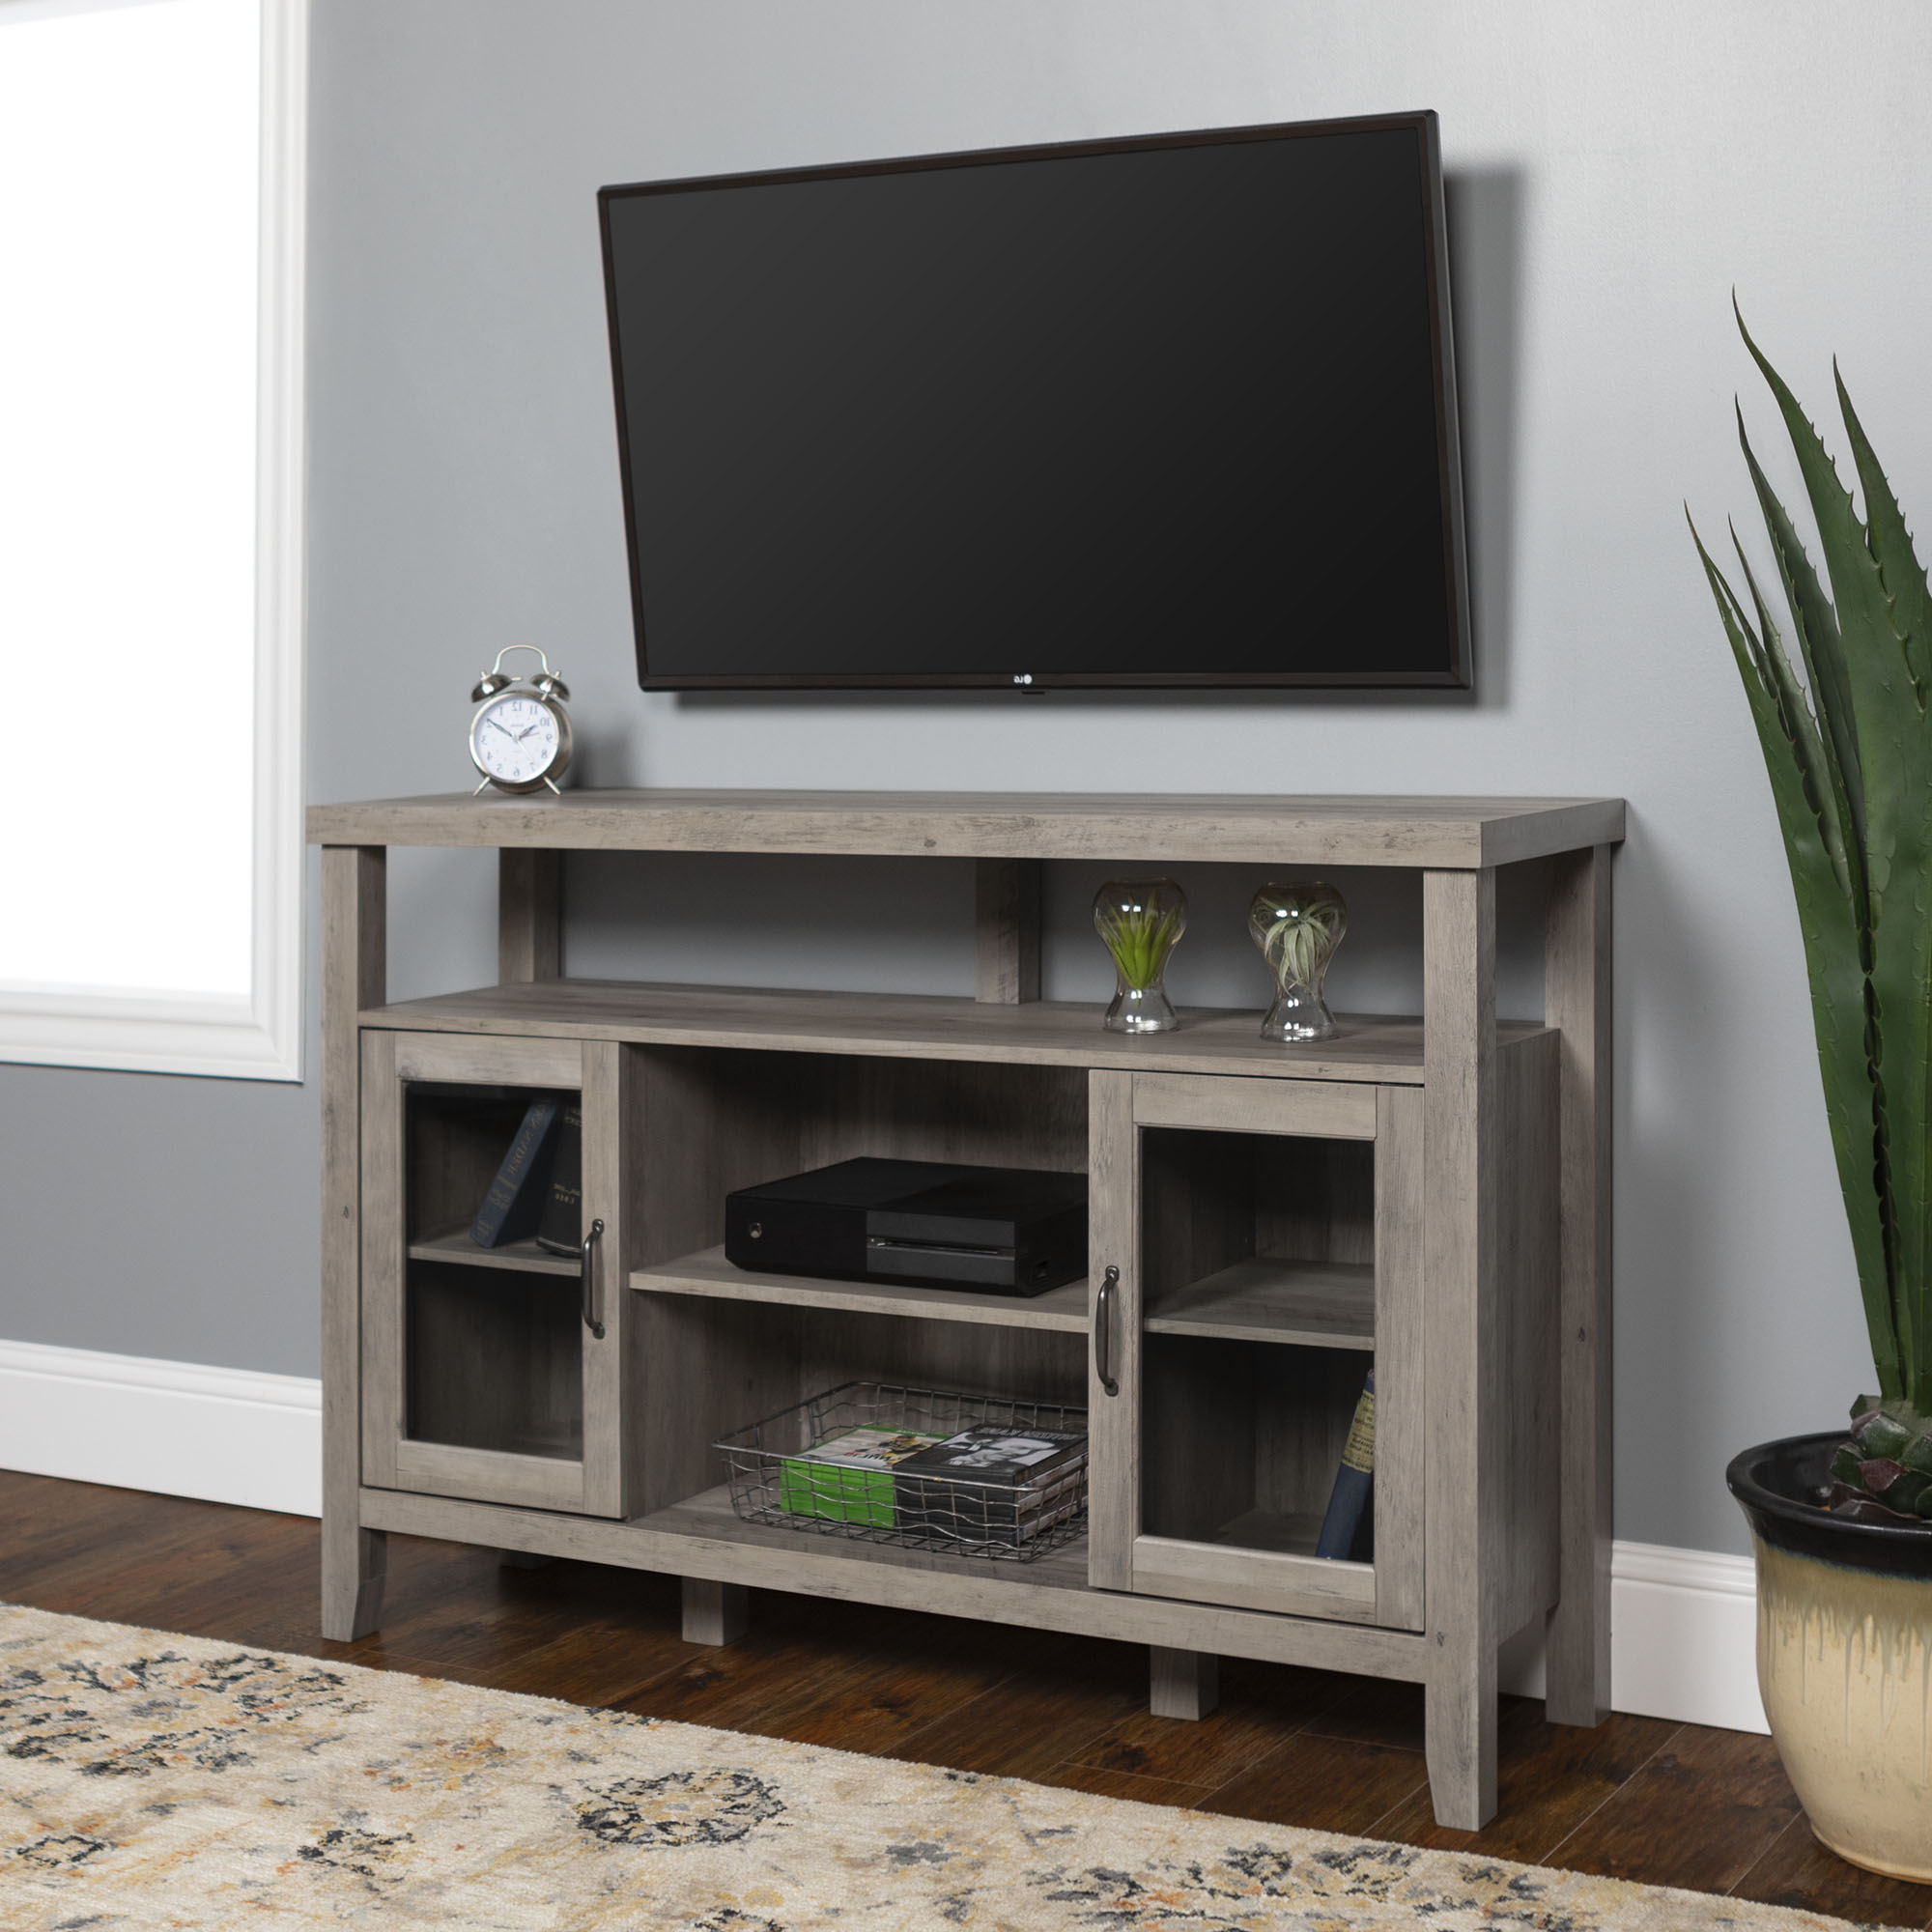 """Manor Park Modern Farmhouse Tall Tv Stand For Tvs Up To 55 Within Lansing Tv Stands For Tvs Up To 55"""" (View 1 of 20)"""